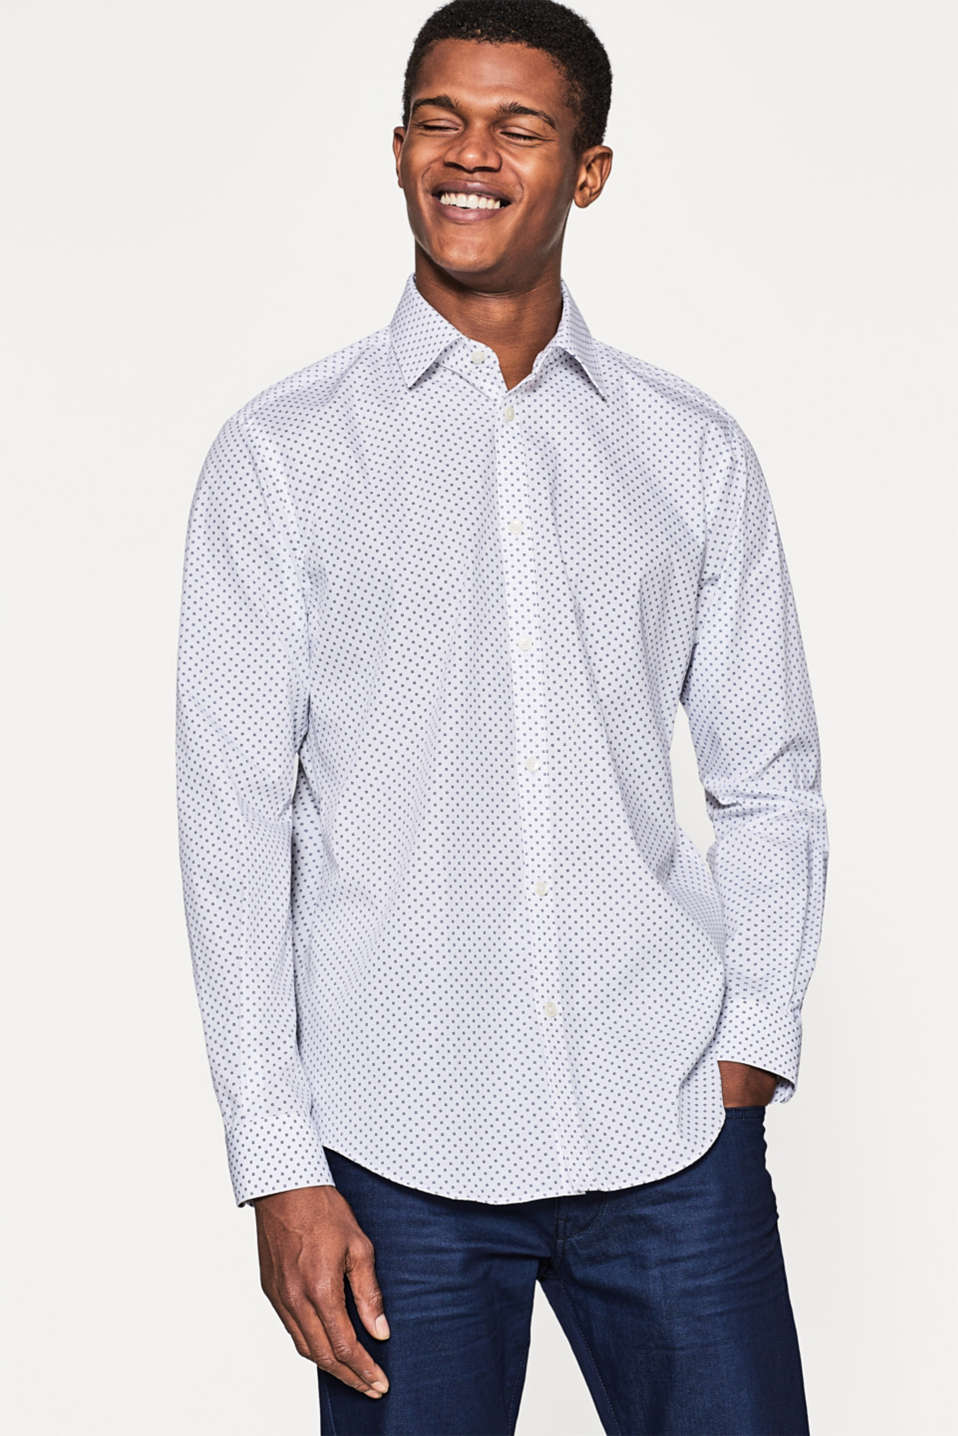 Esprit poplin shirt with a fine minimalist print at our for What is a poplin shirt